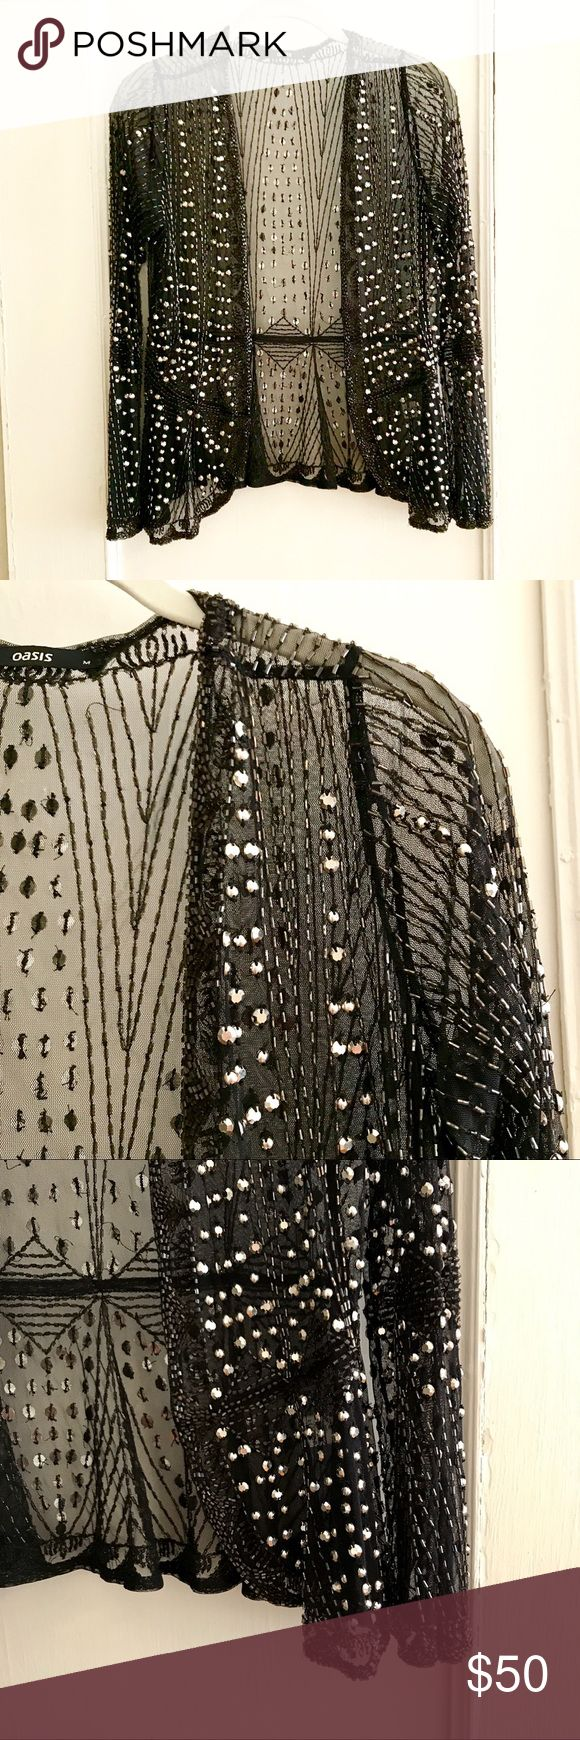 Oasis Beaded Jacket - Size Medium A gorgeous rockstar worthy beaded Oasis jacket in size medium. Sheer black with beads & studs mostly intact (missing beads not noticeable). Pair with a basic black dress or dress up a pair of skinny jeans! Oasis Jackets & Coats